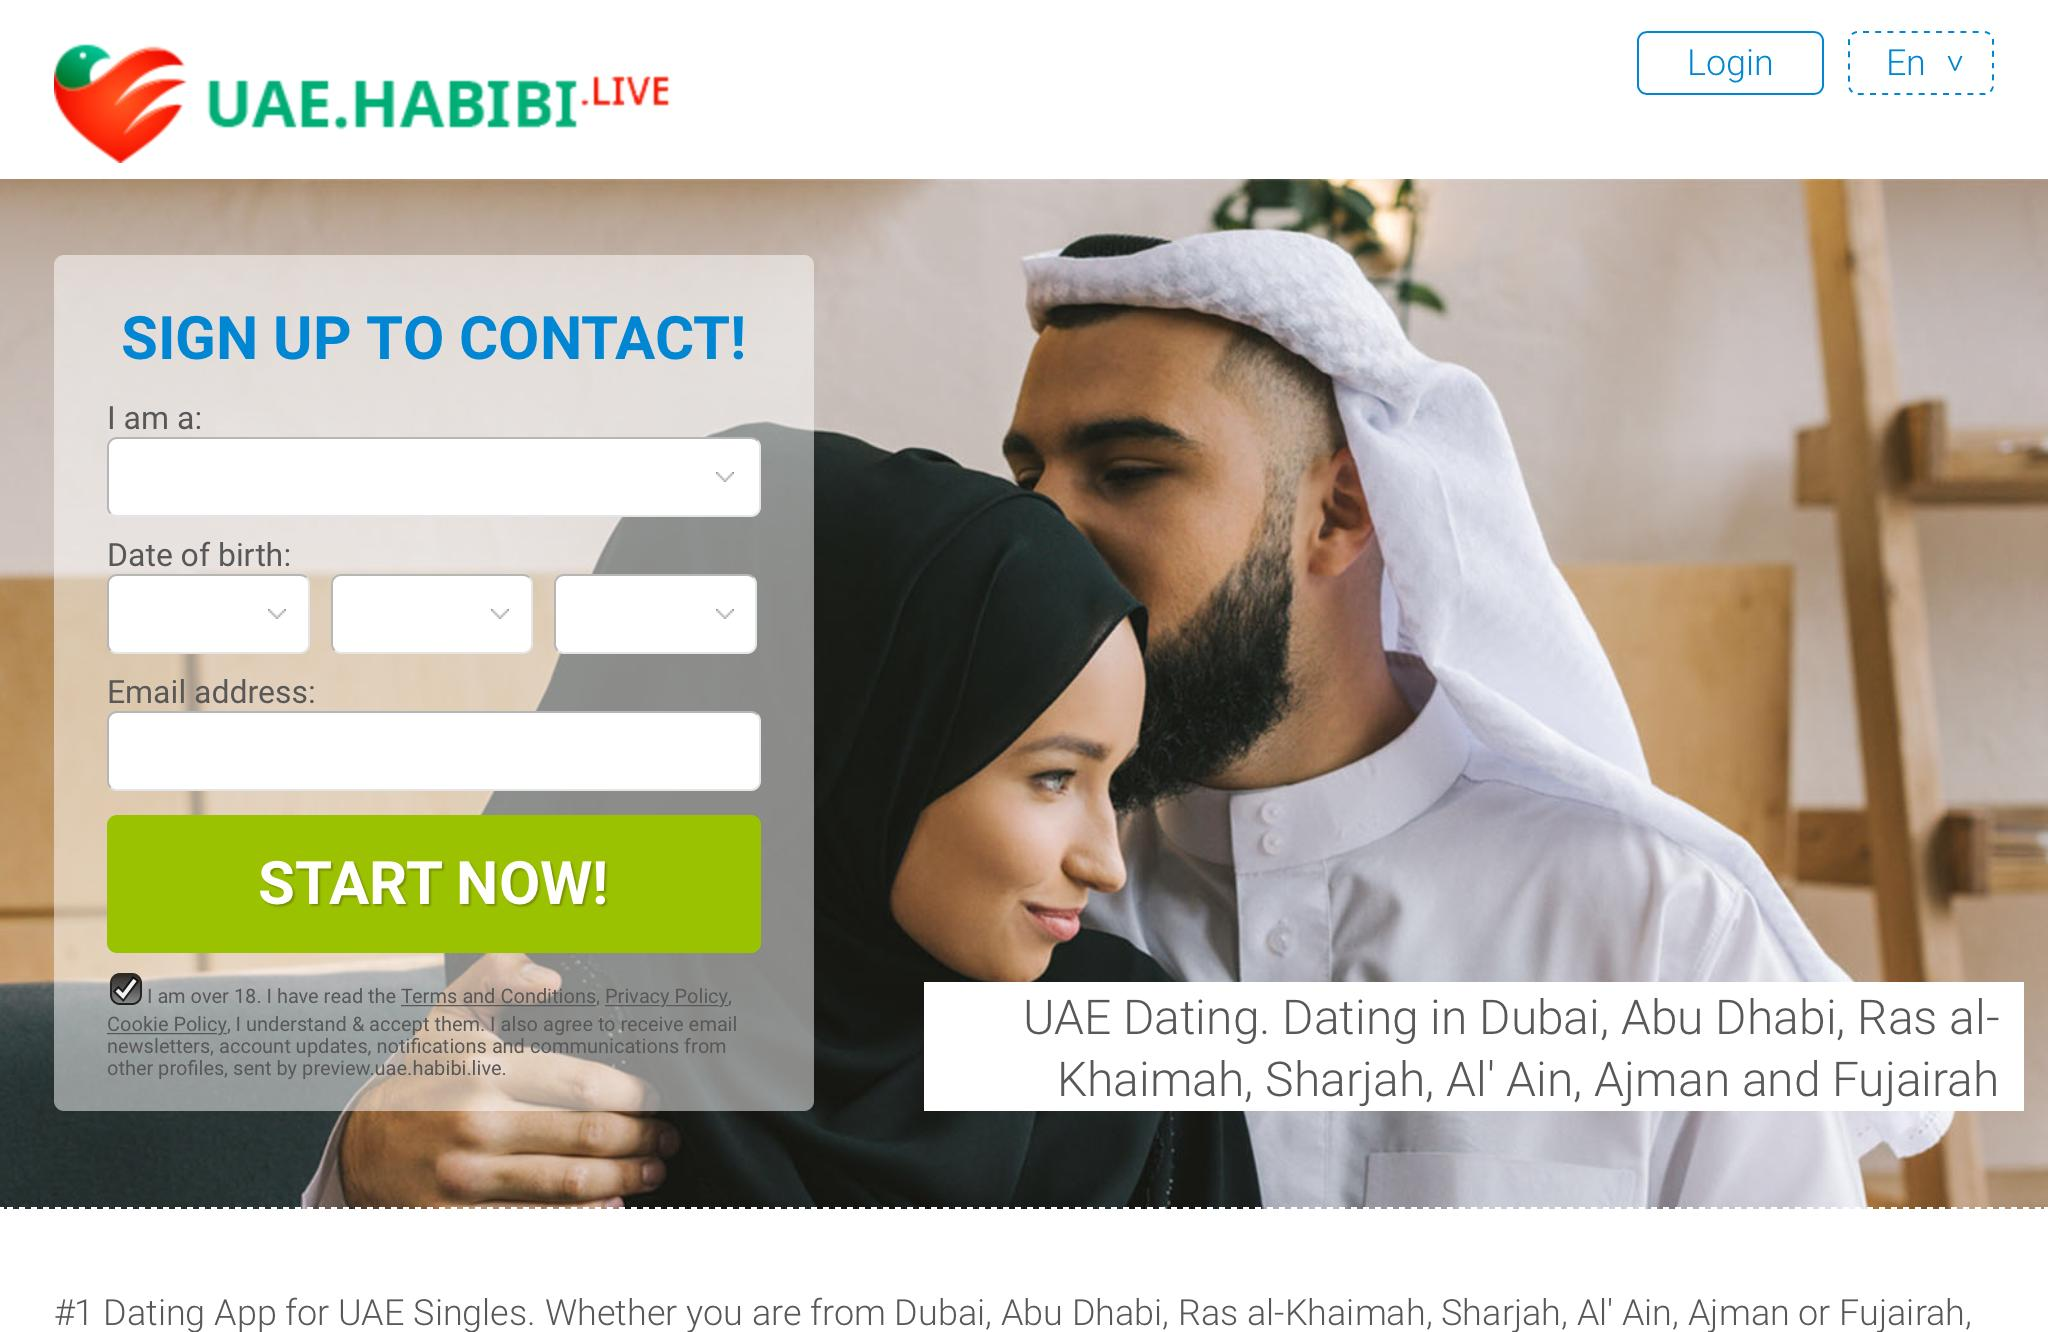 Al Ain dating